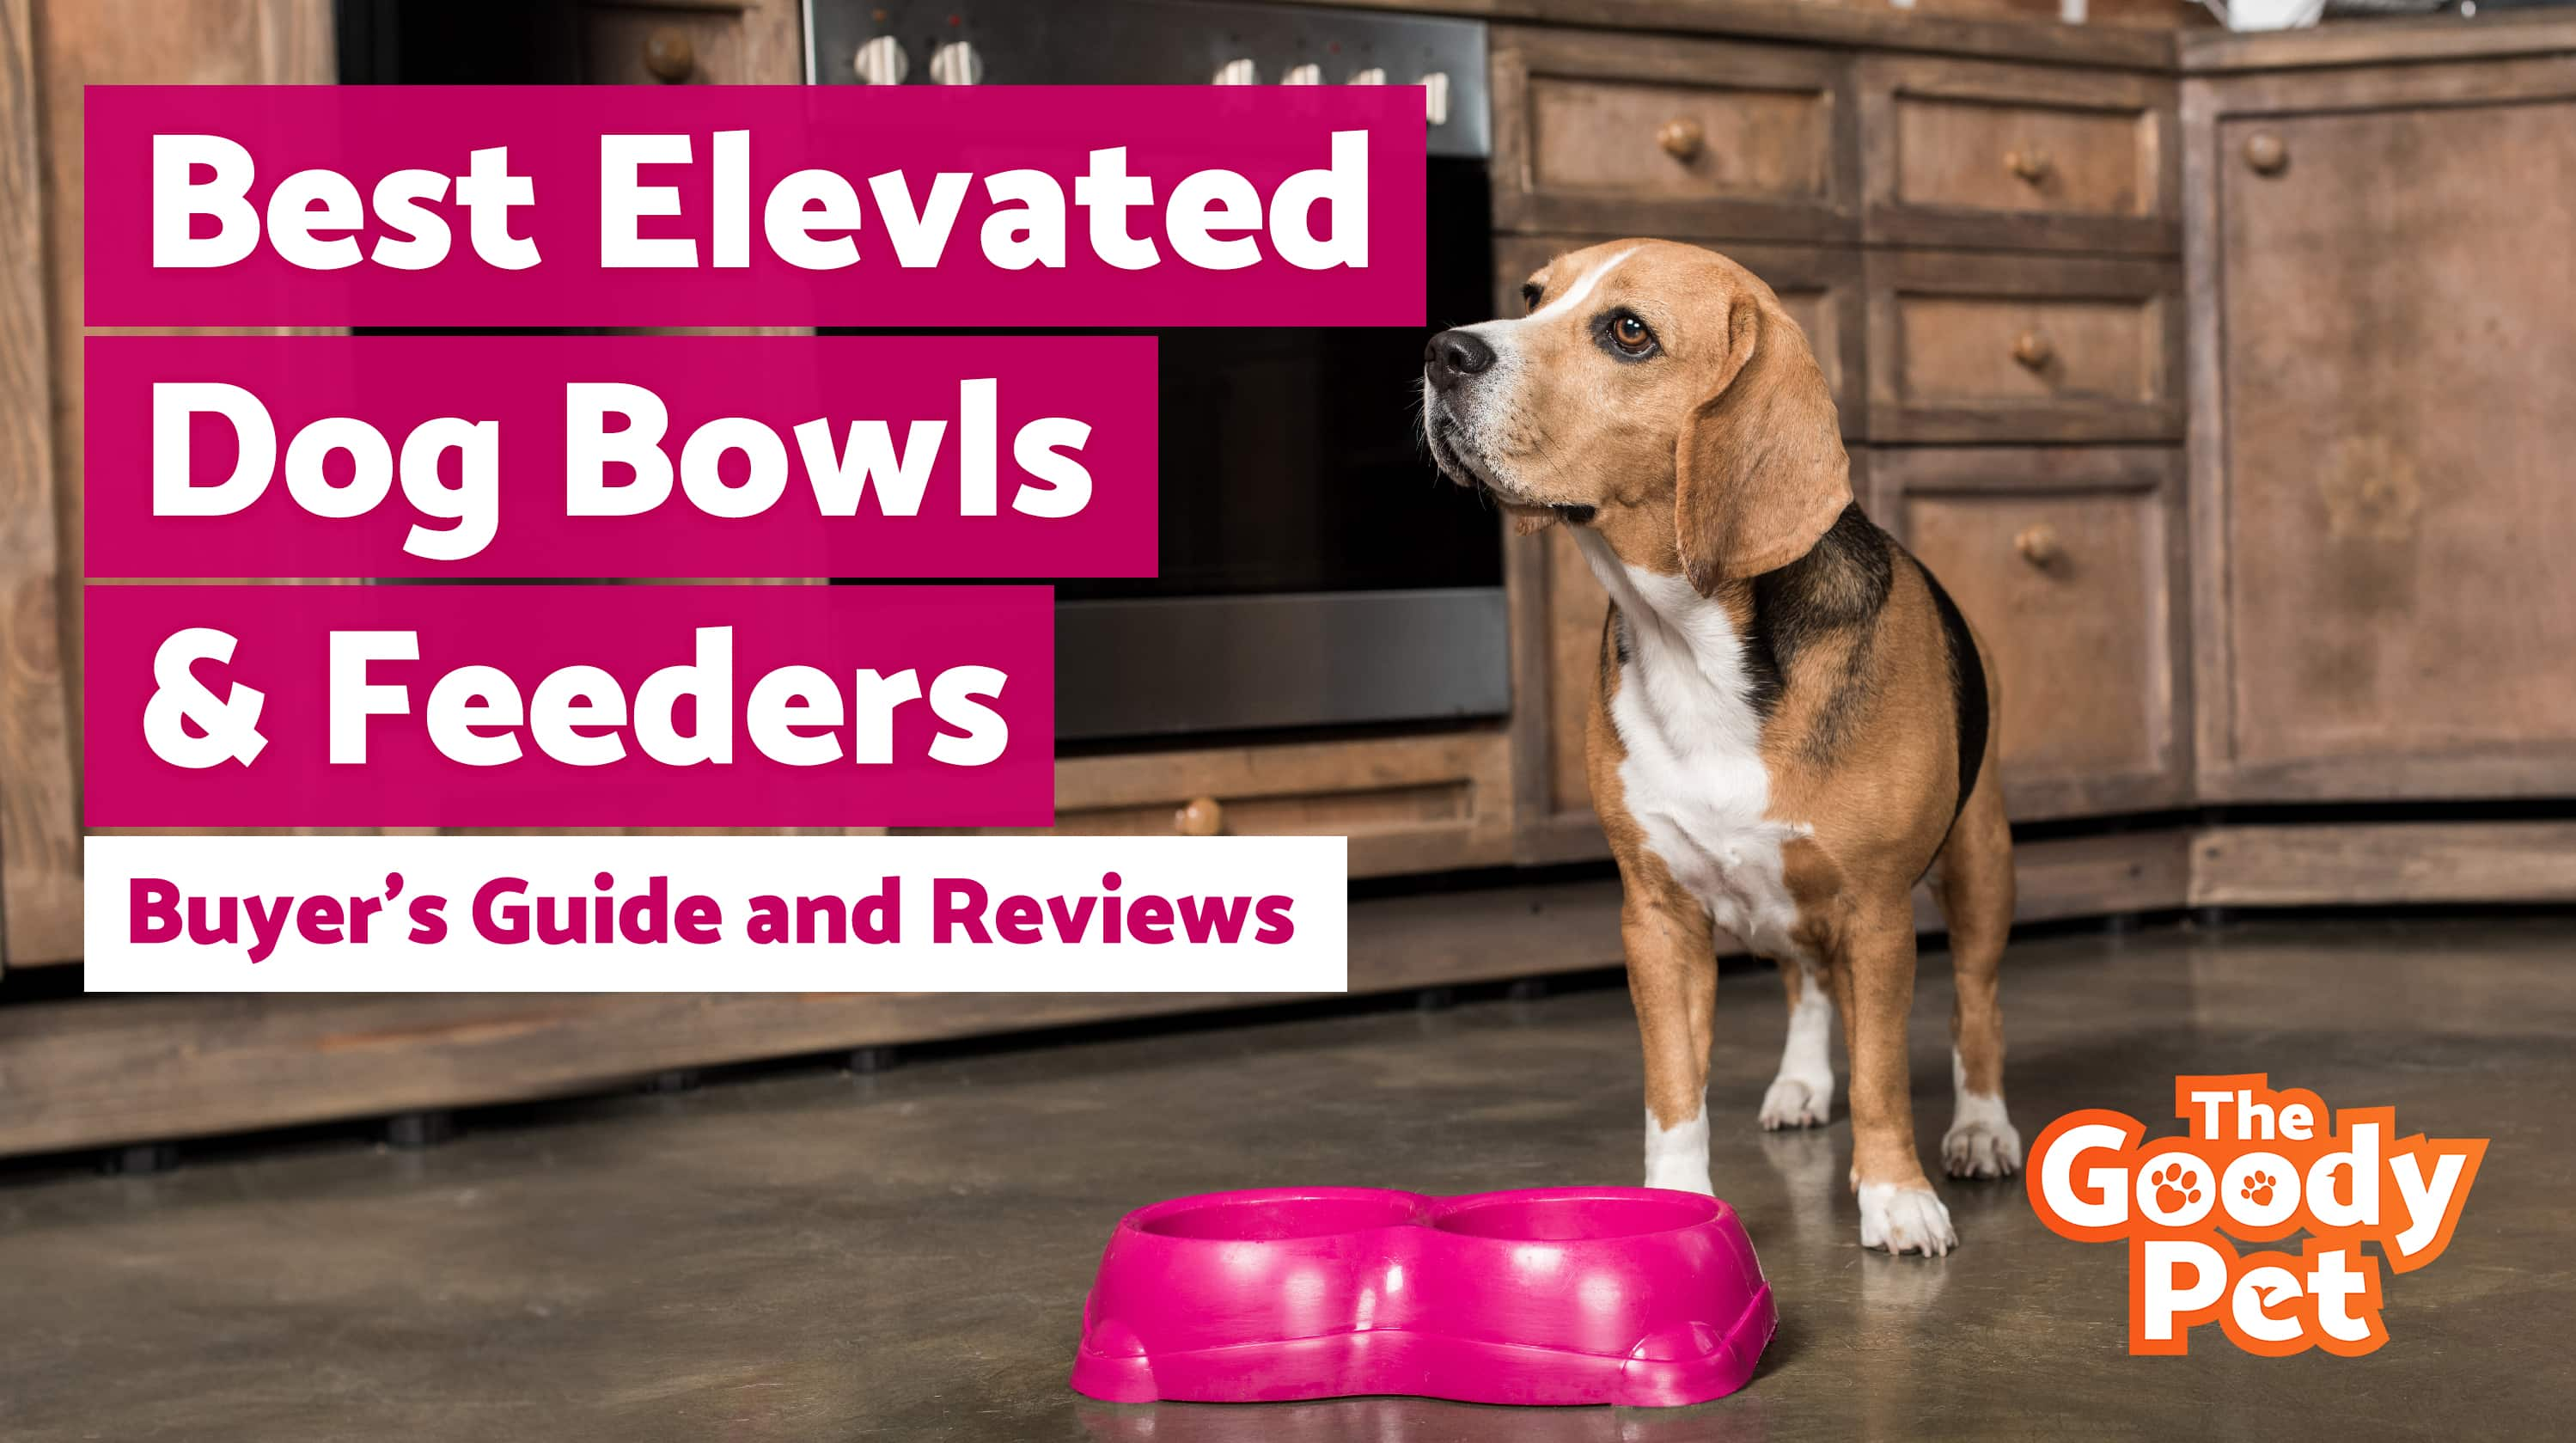 Best Elevated Dog Bowls & Feeders For Your Pooch – Our 2019 Reviews & Top Picks